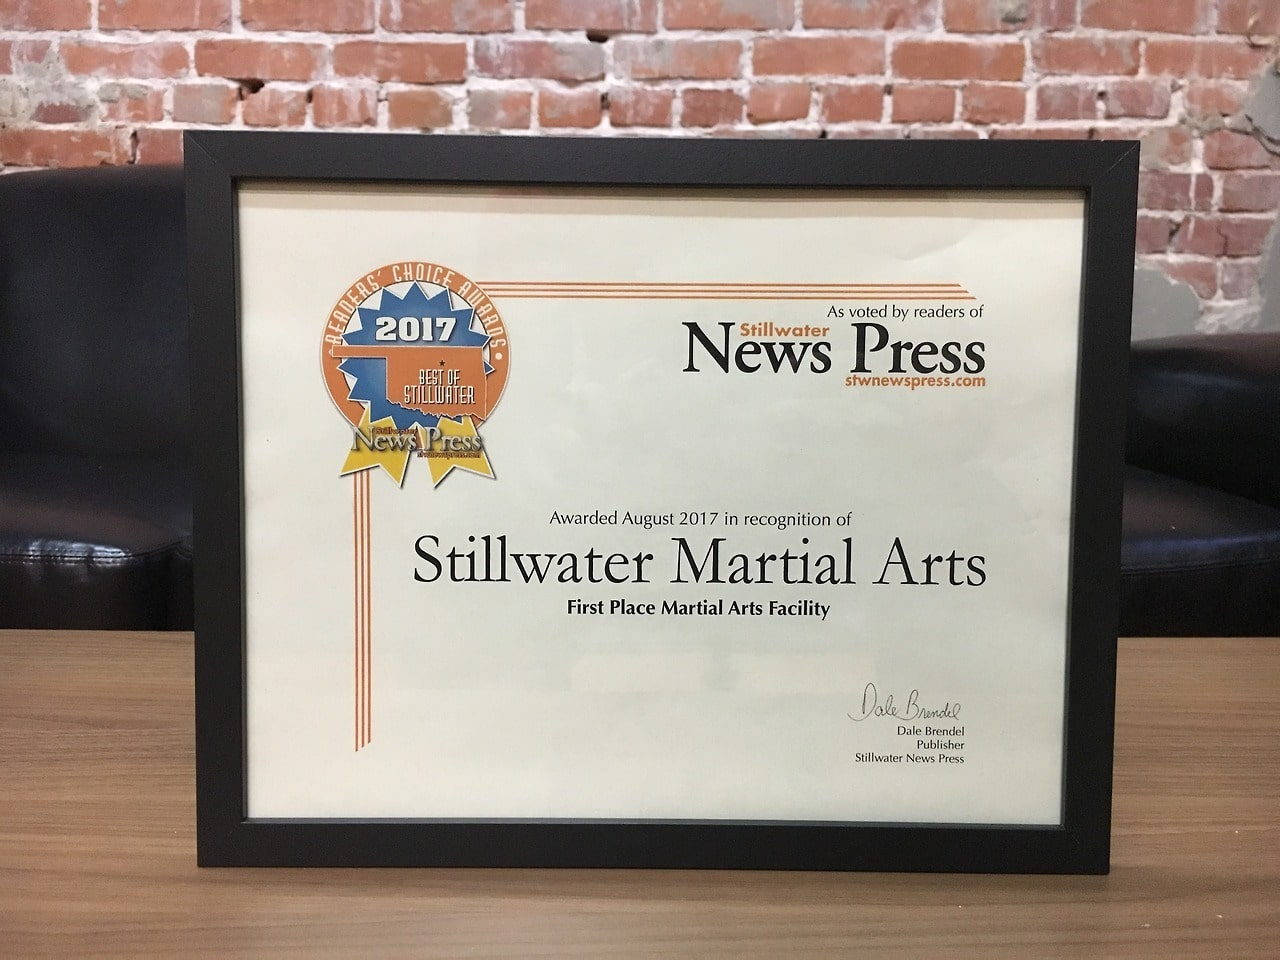 2017 First Place Martial Arts Stillwater Martial Arts